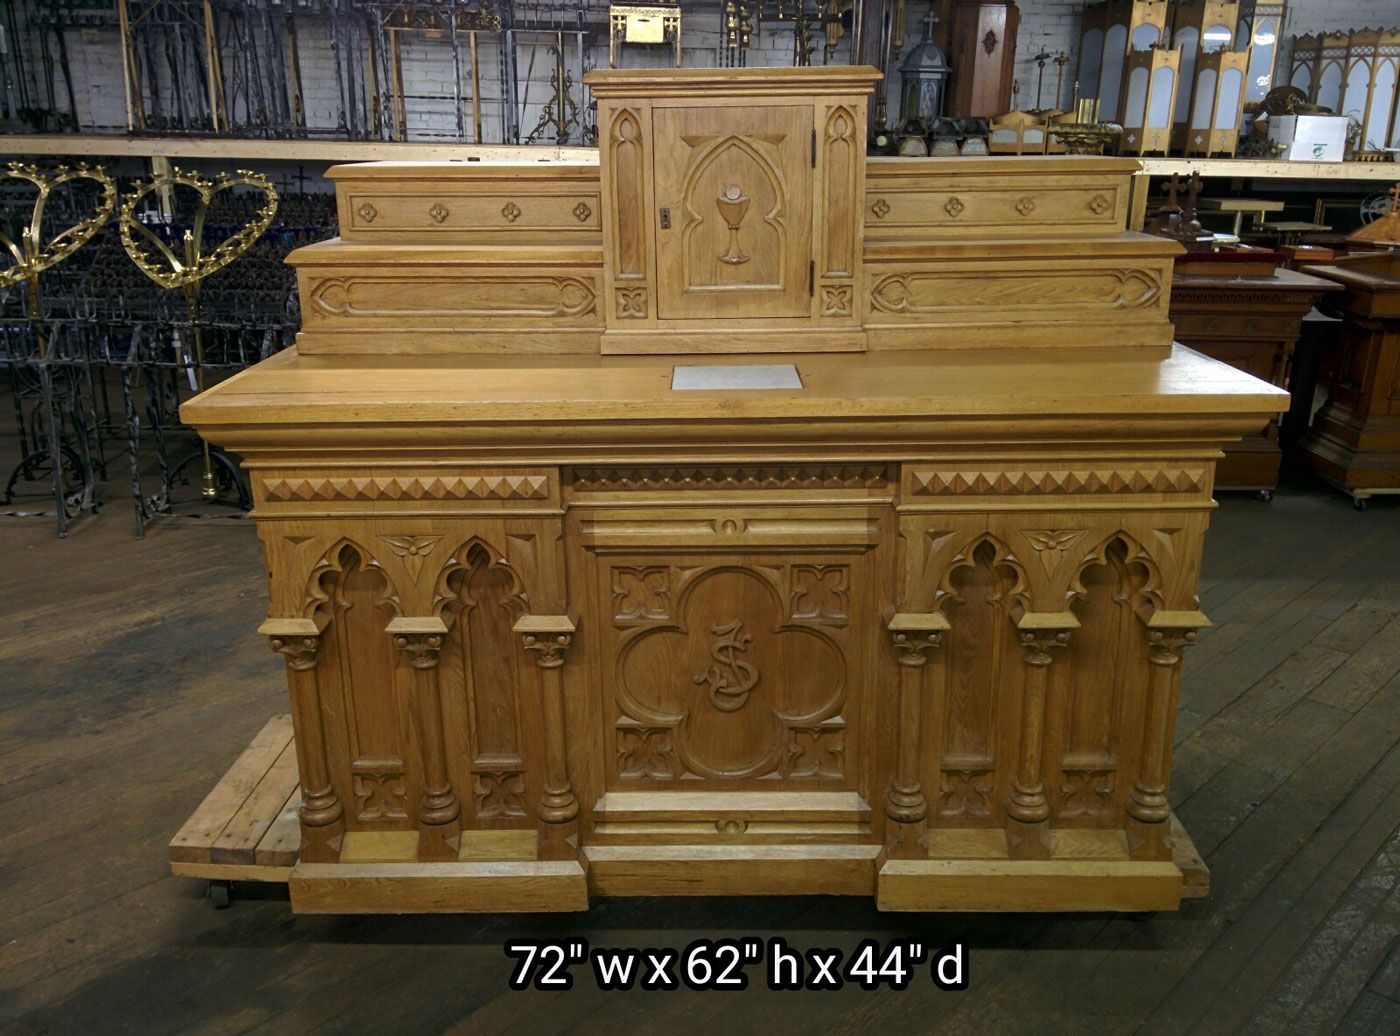 Wooden Gothic Altars for Sale | Altars - Used Church Items #churchitems